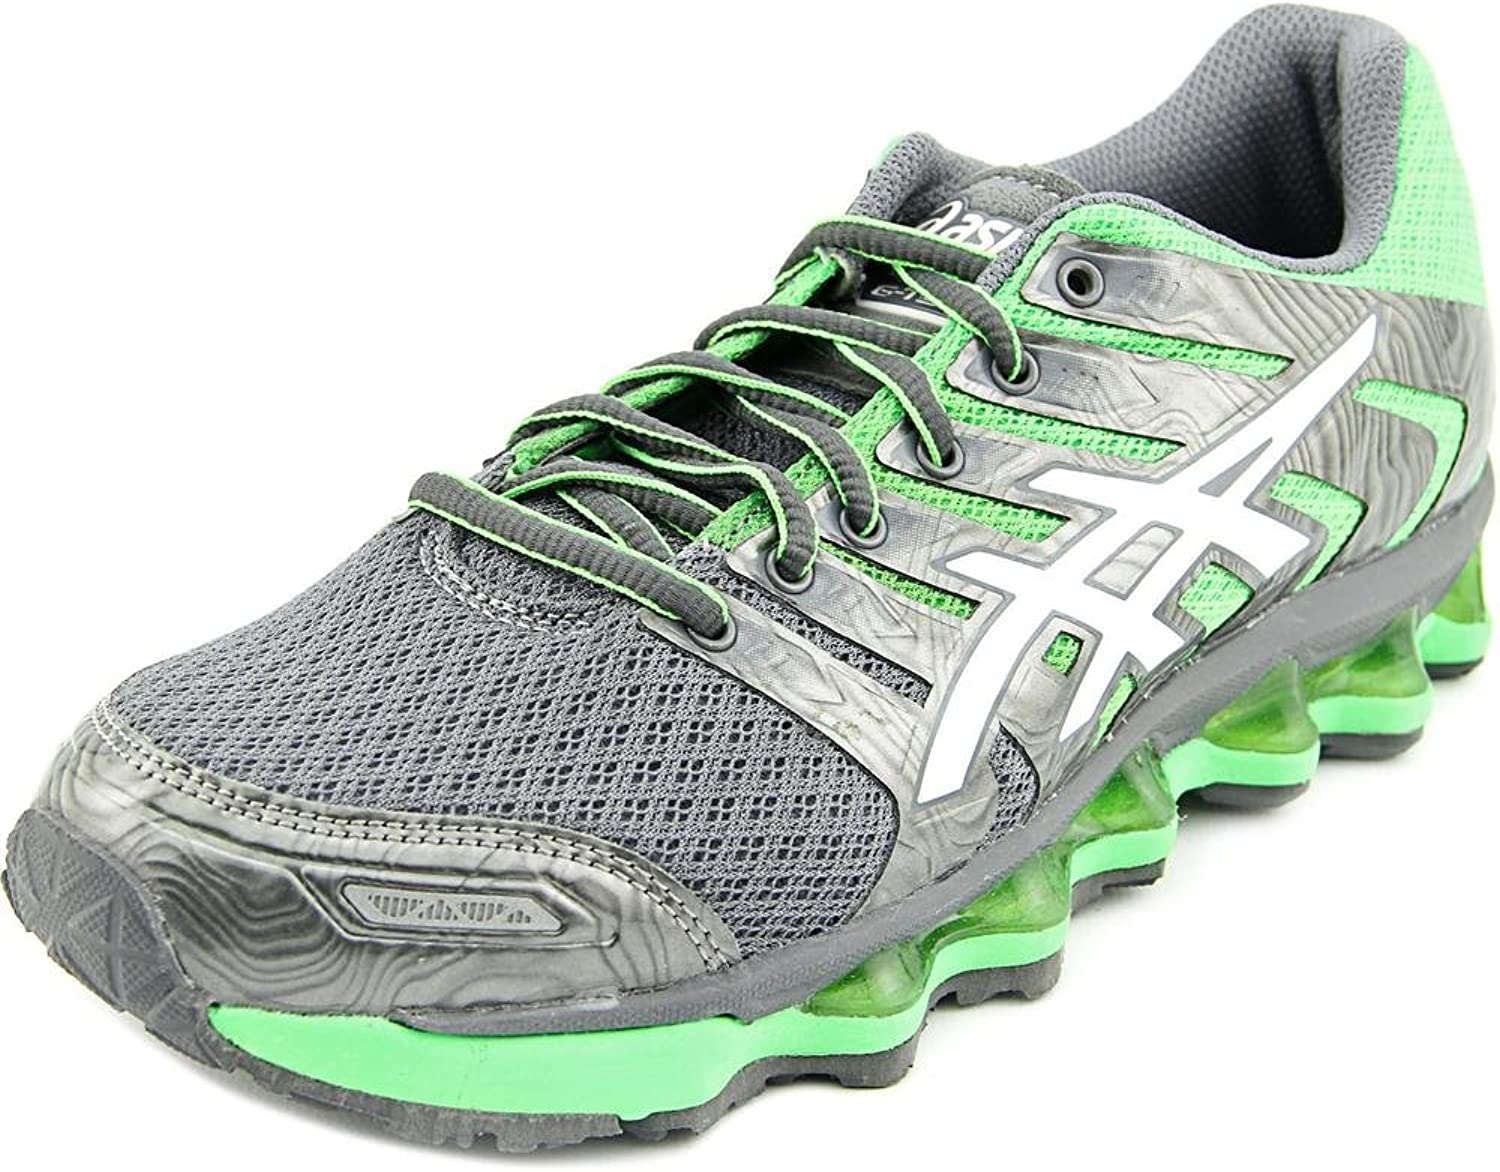 ASICS Womens T2g8n Fabric Low Top Lace Up Running Sneaker